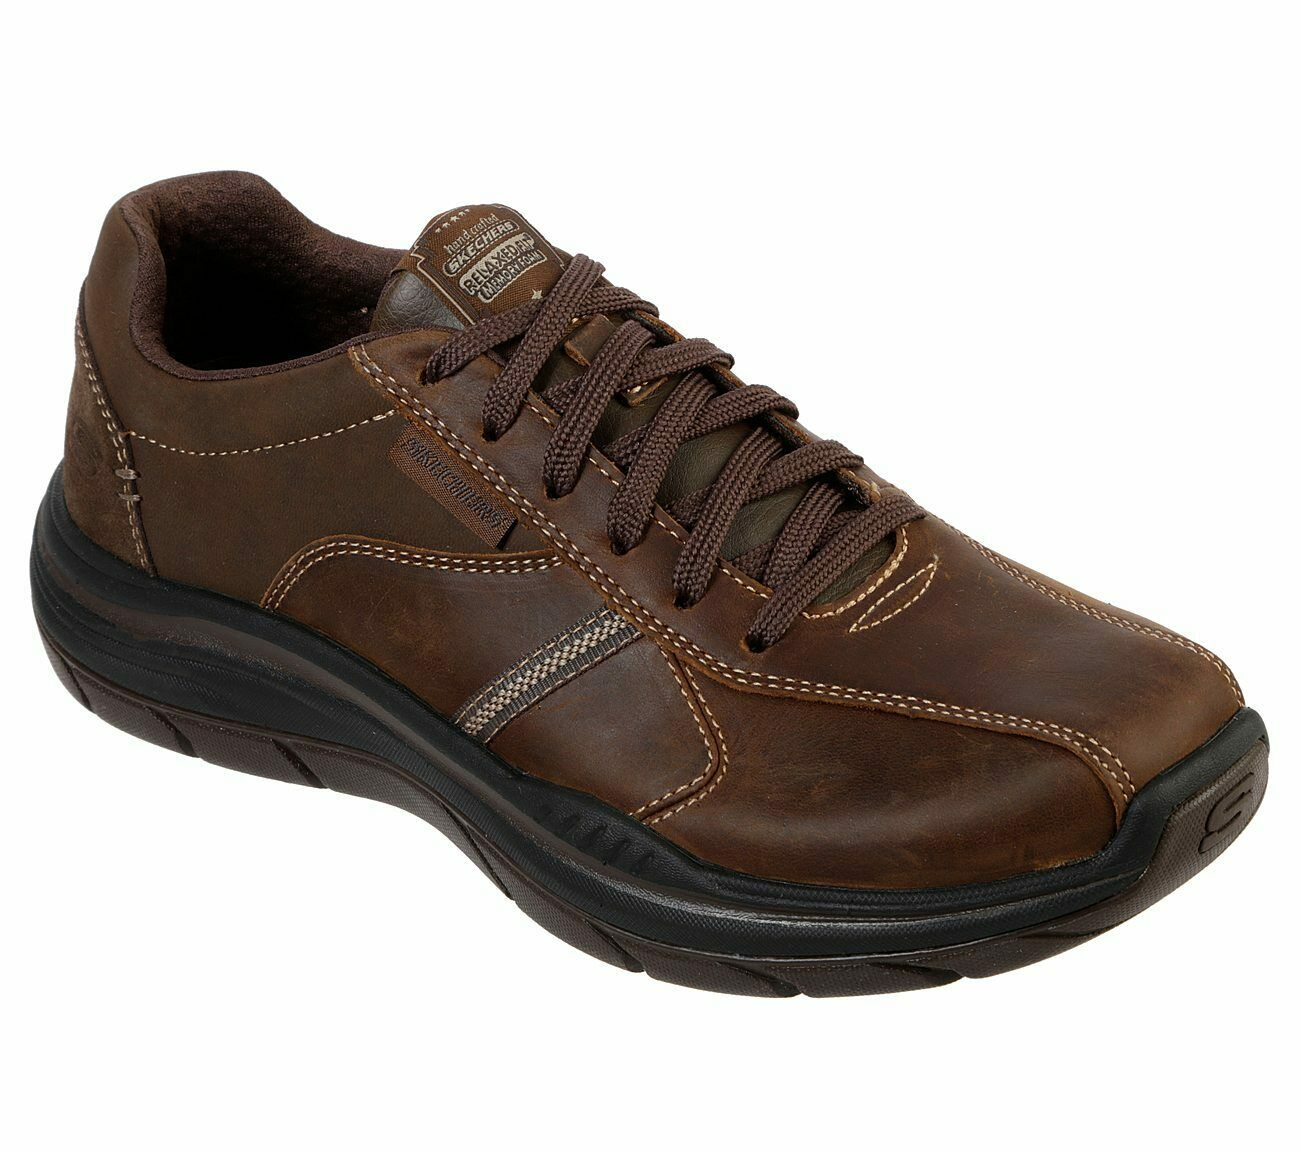 Skechers Relaxed Fit  Expected 2.0 - Belfair Trainers 66419 Mens Leather schuhe